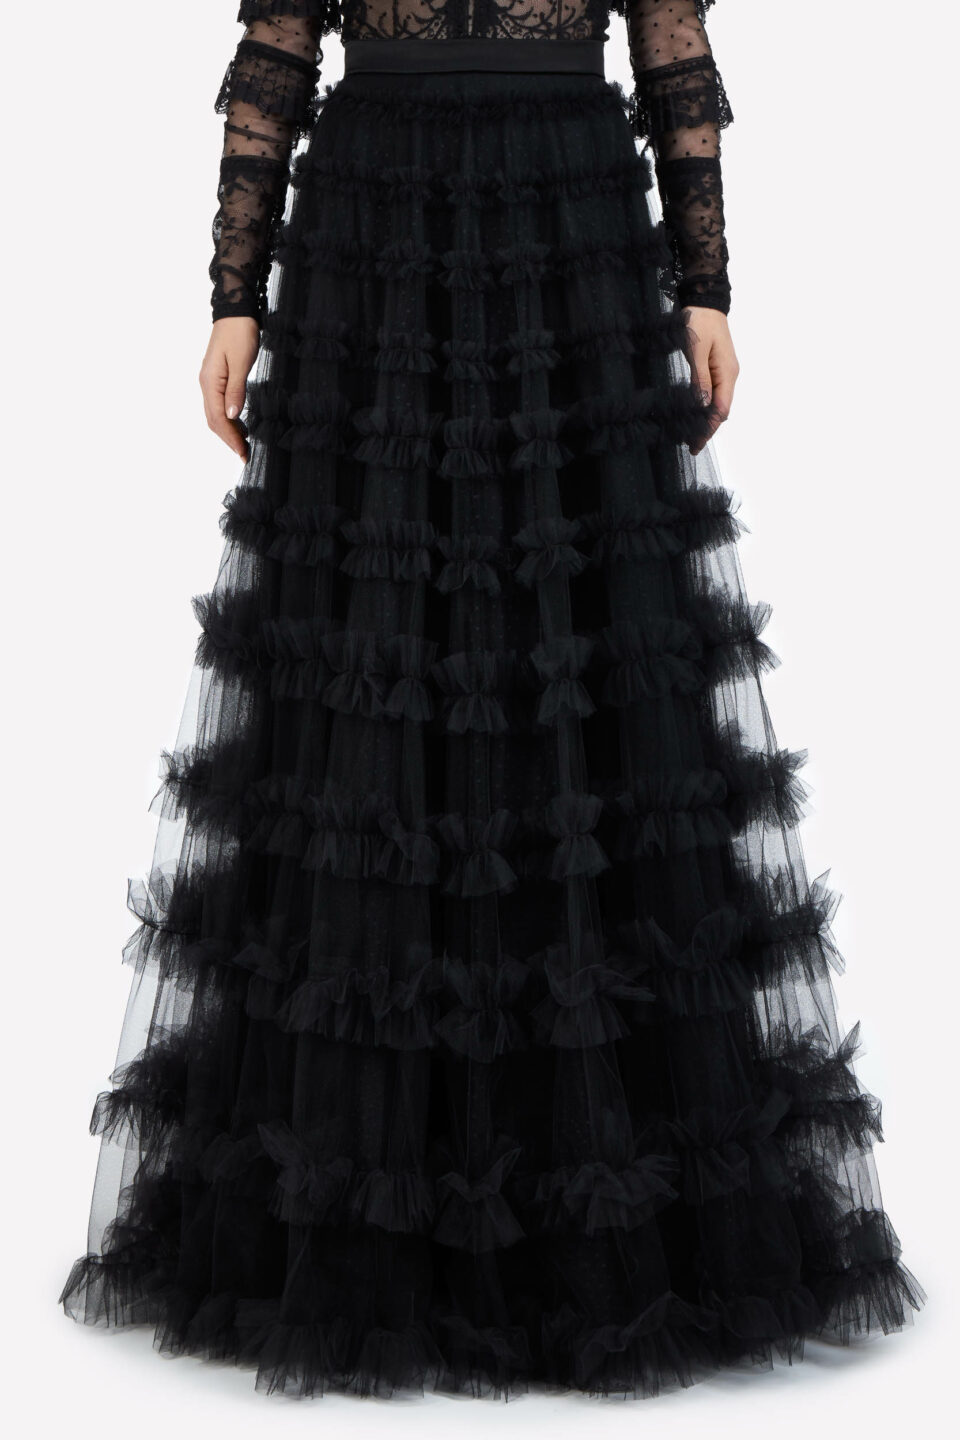 Anastasia FW2155 Black French Tulle Evening Skirt with Double-Edged Ruffles